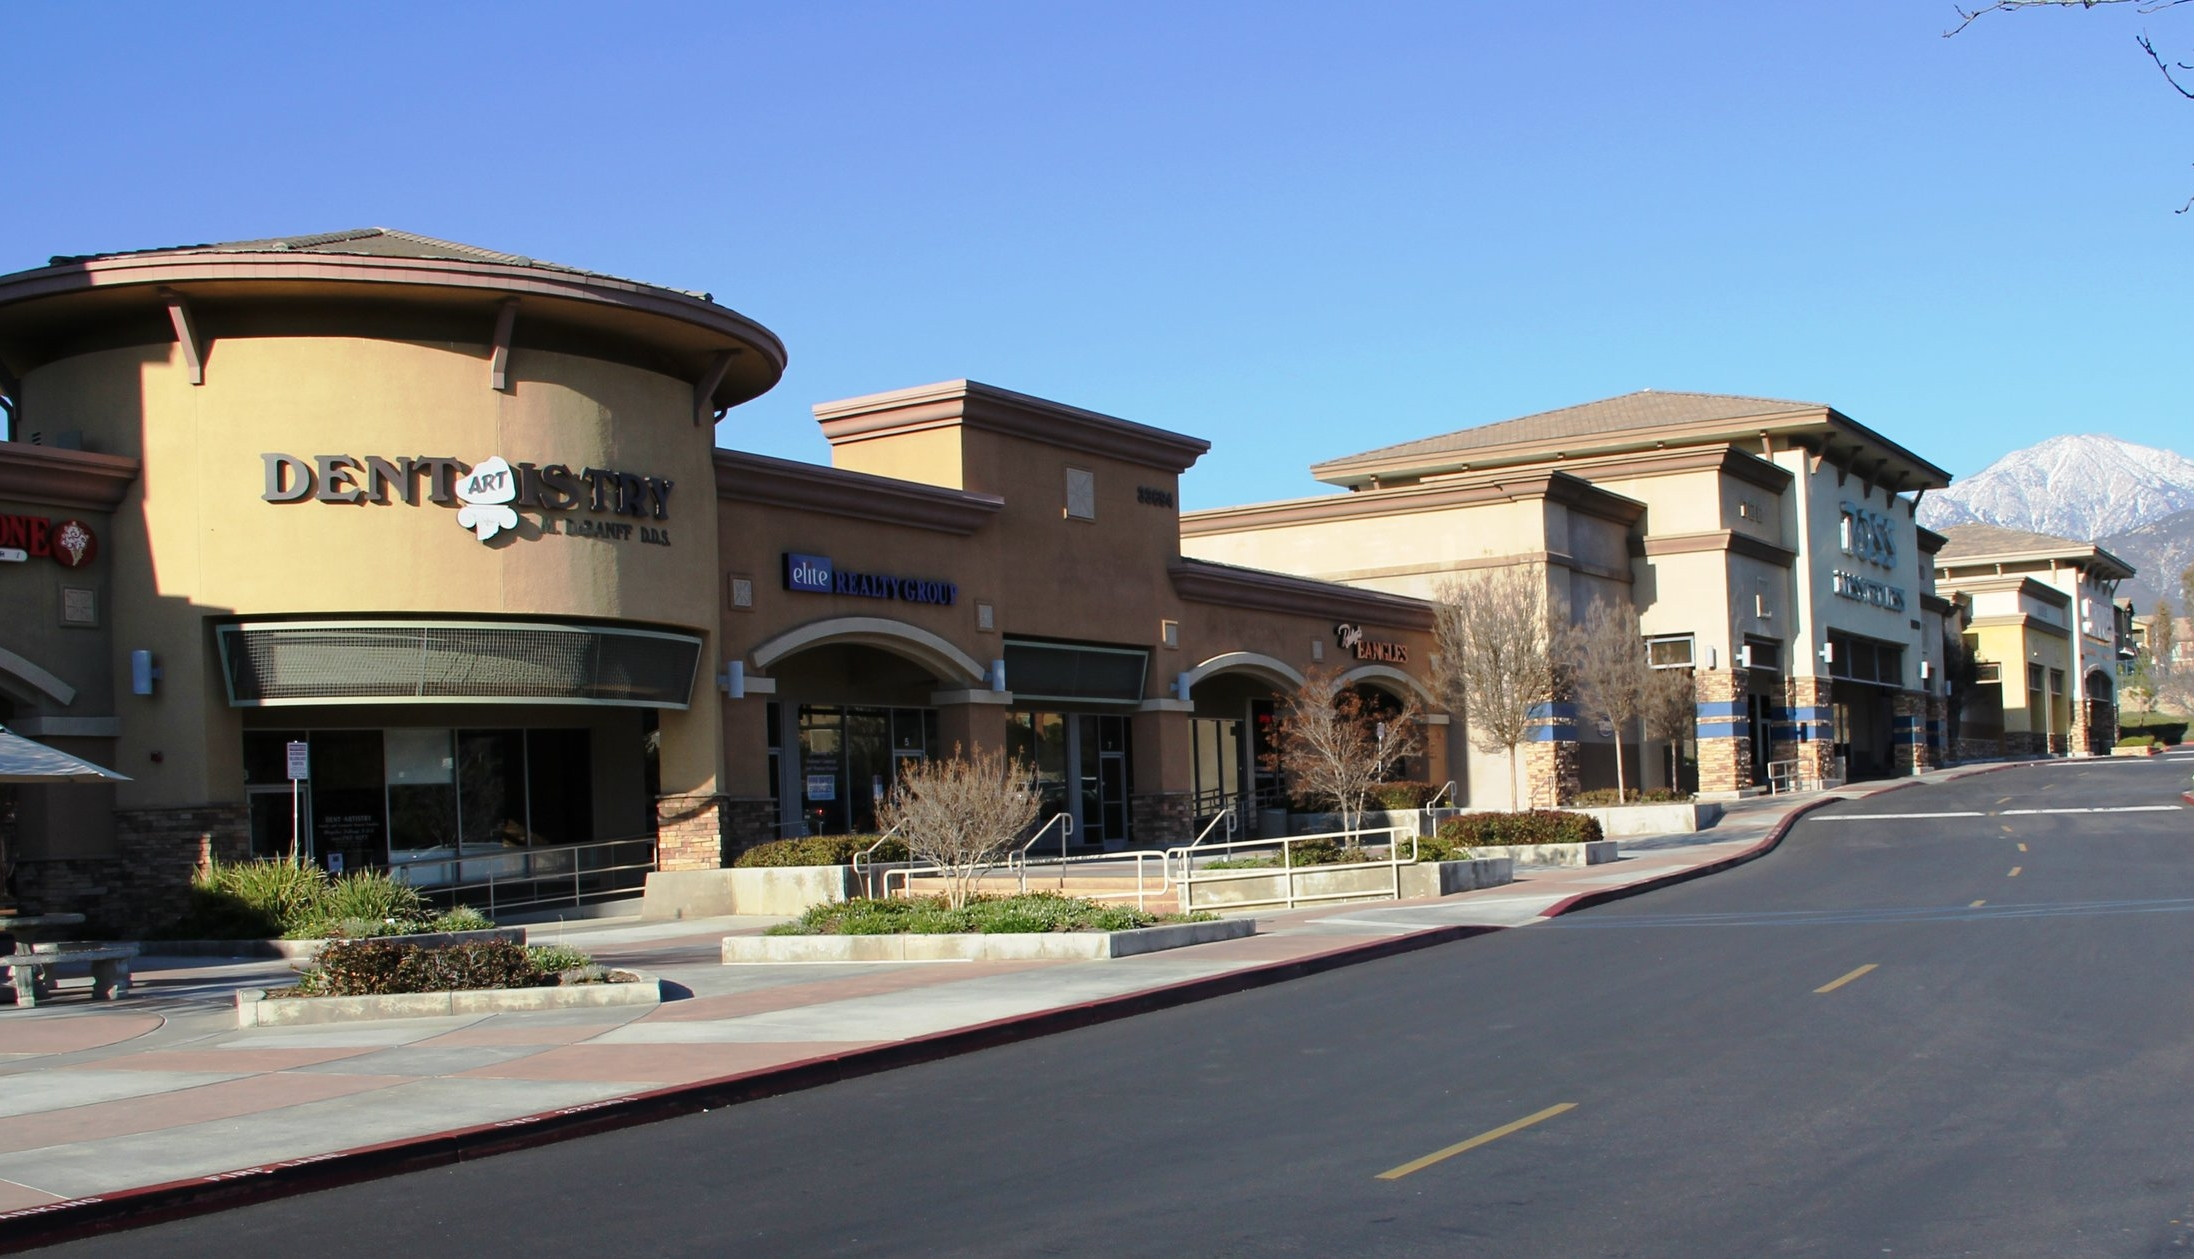 Picture of neighborhood commercial retail center.